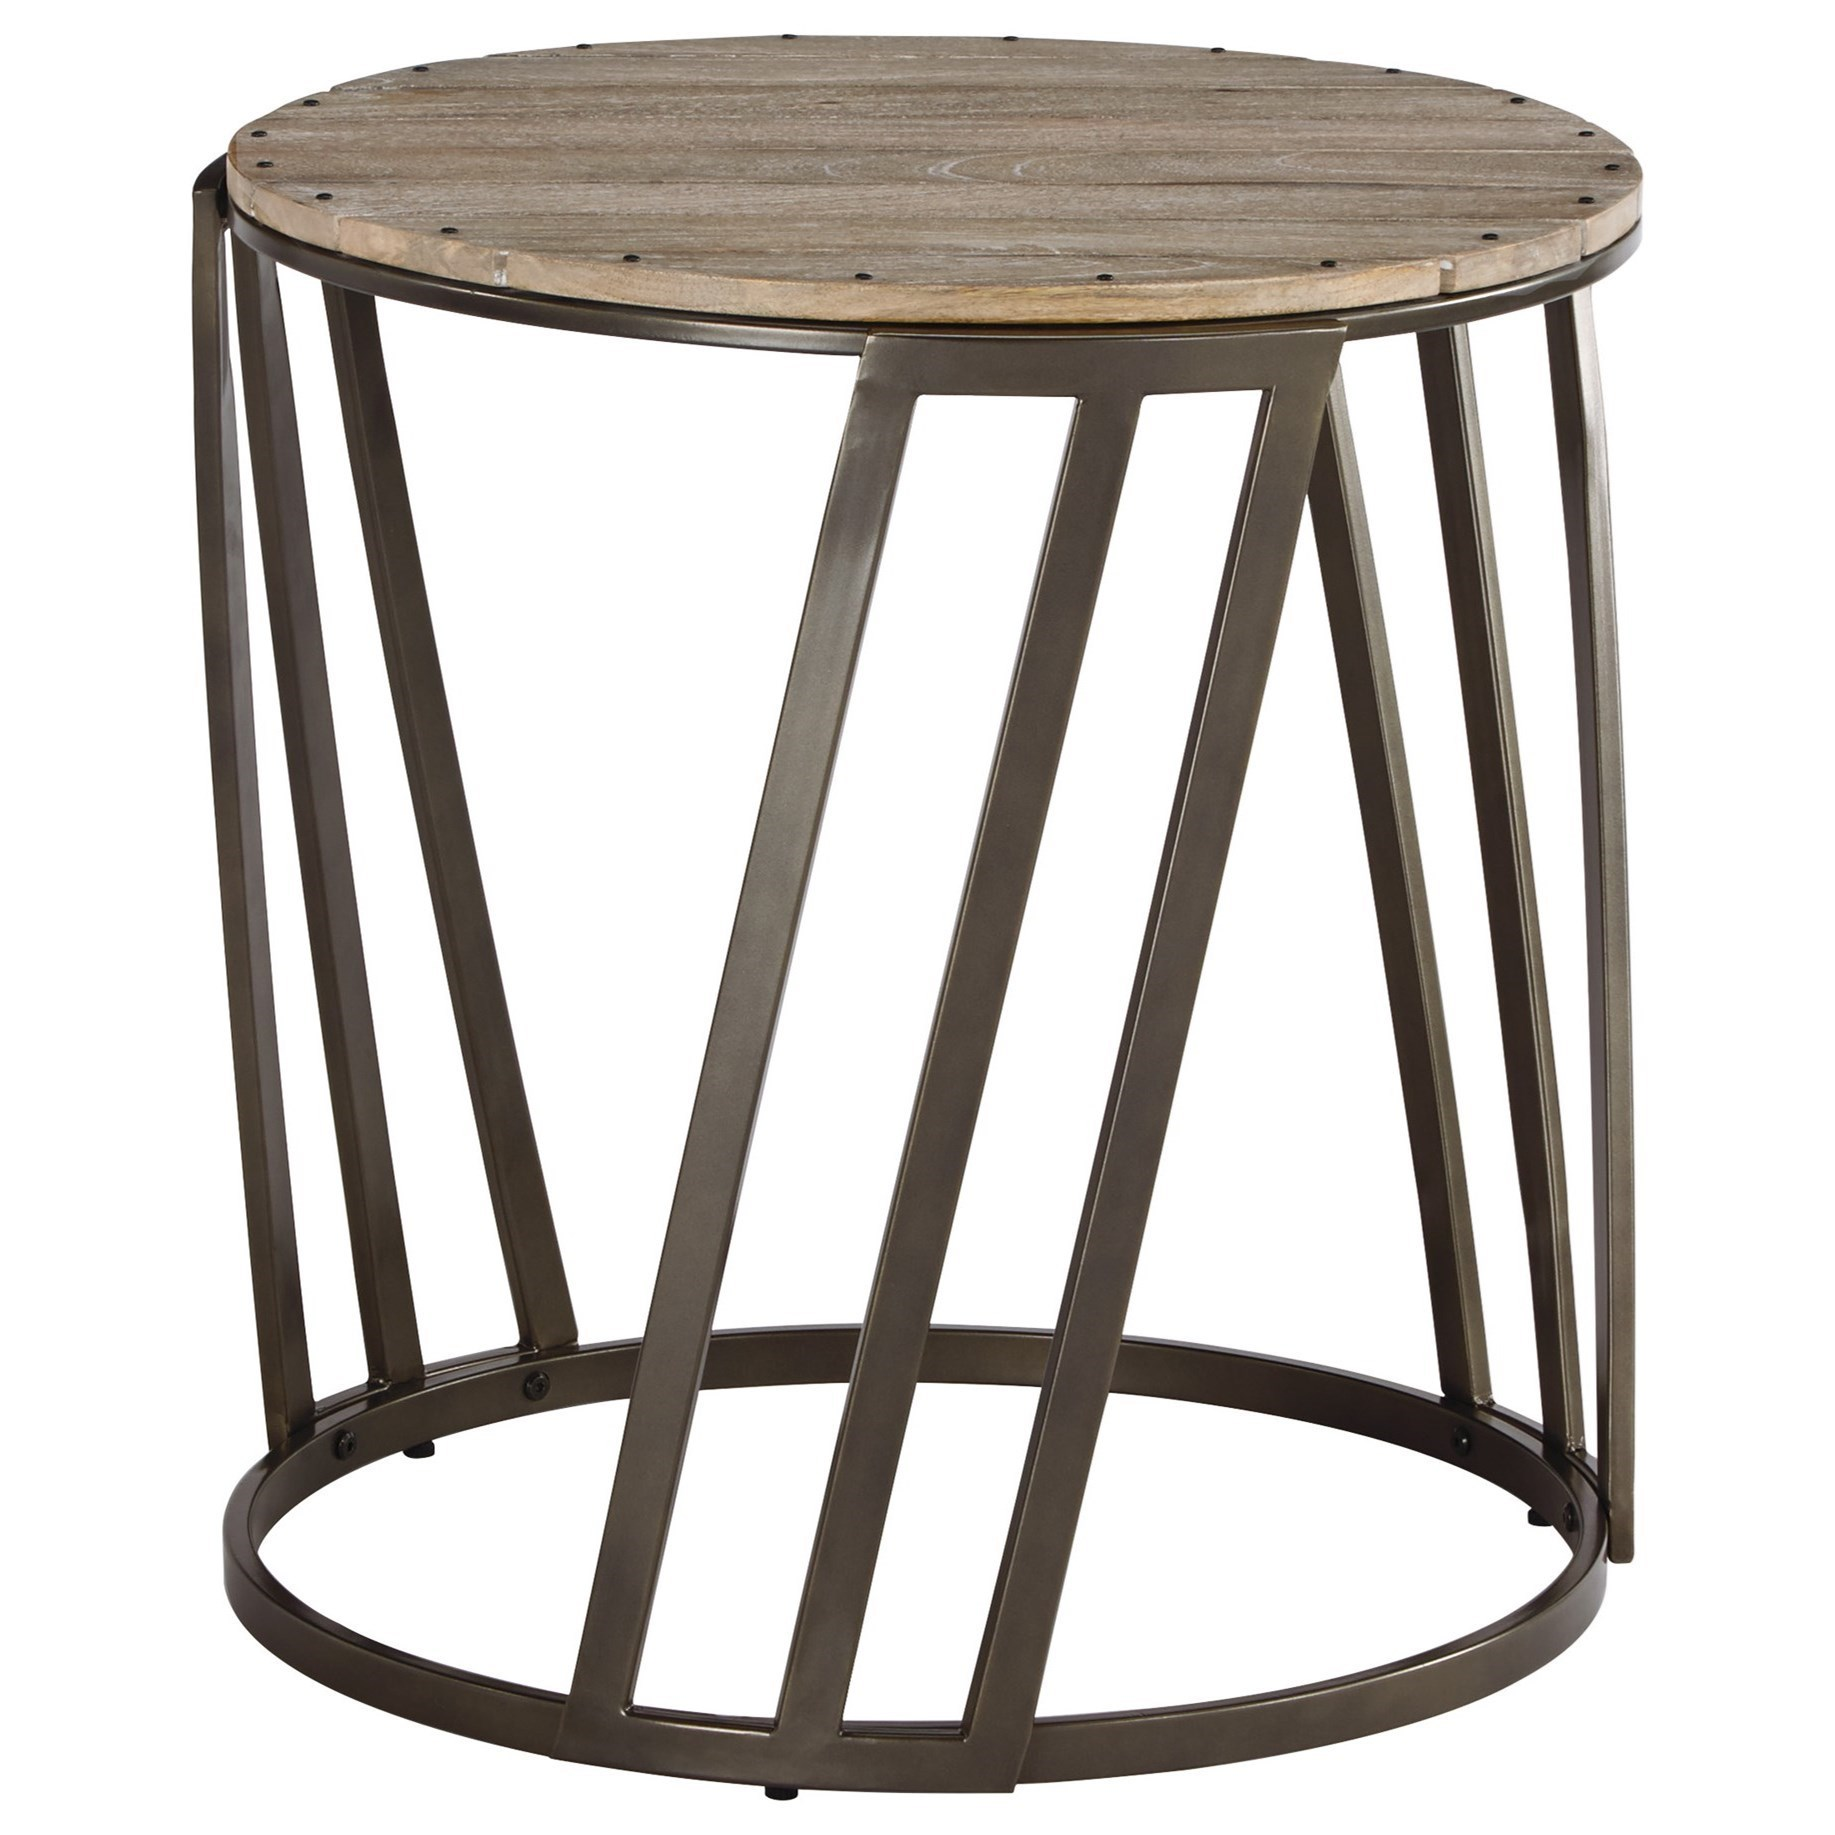 round end tables cheap rustic signature design by ashley fathenzenround end table fathenzen t5366 relaxed vintage round